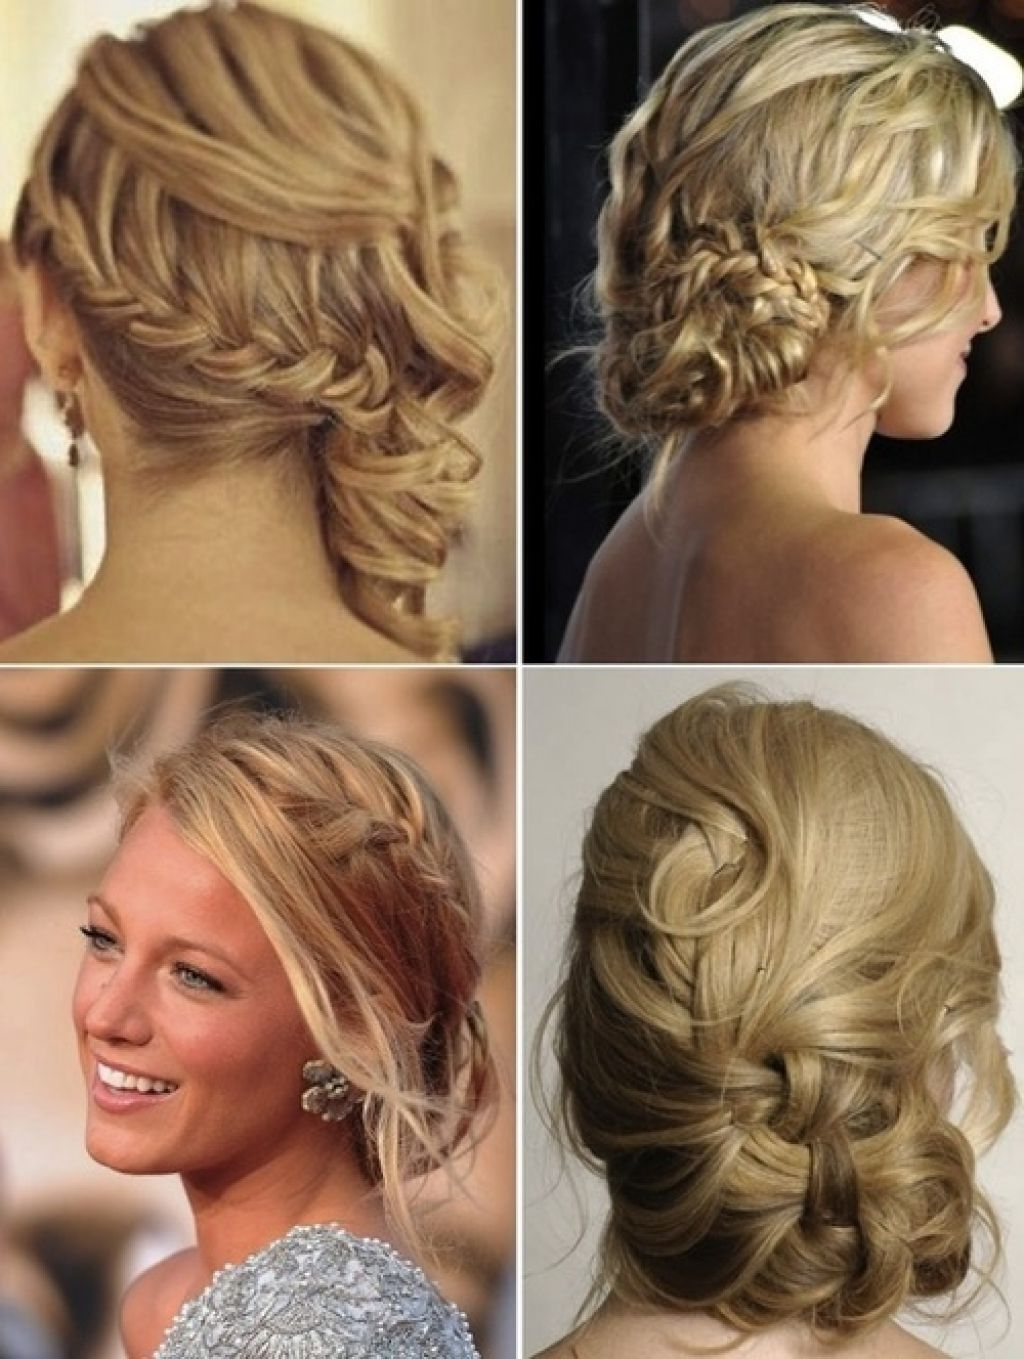 Most Popular Wedding Guest Hairstyles For Long Straight Hair In Easy Casual Updo Hairstyles For Long Hair – The Newest Hairstyles (View 12 of 15)